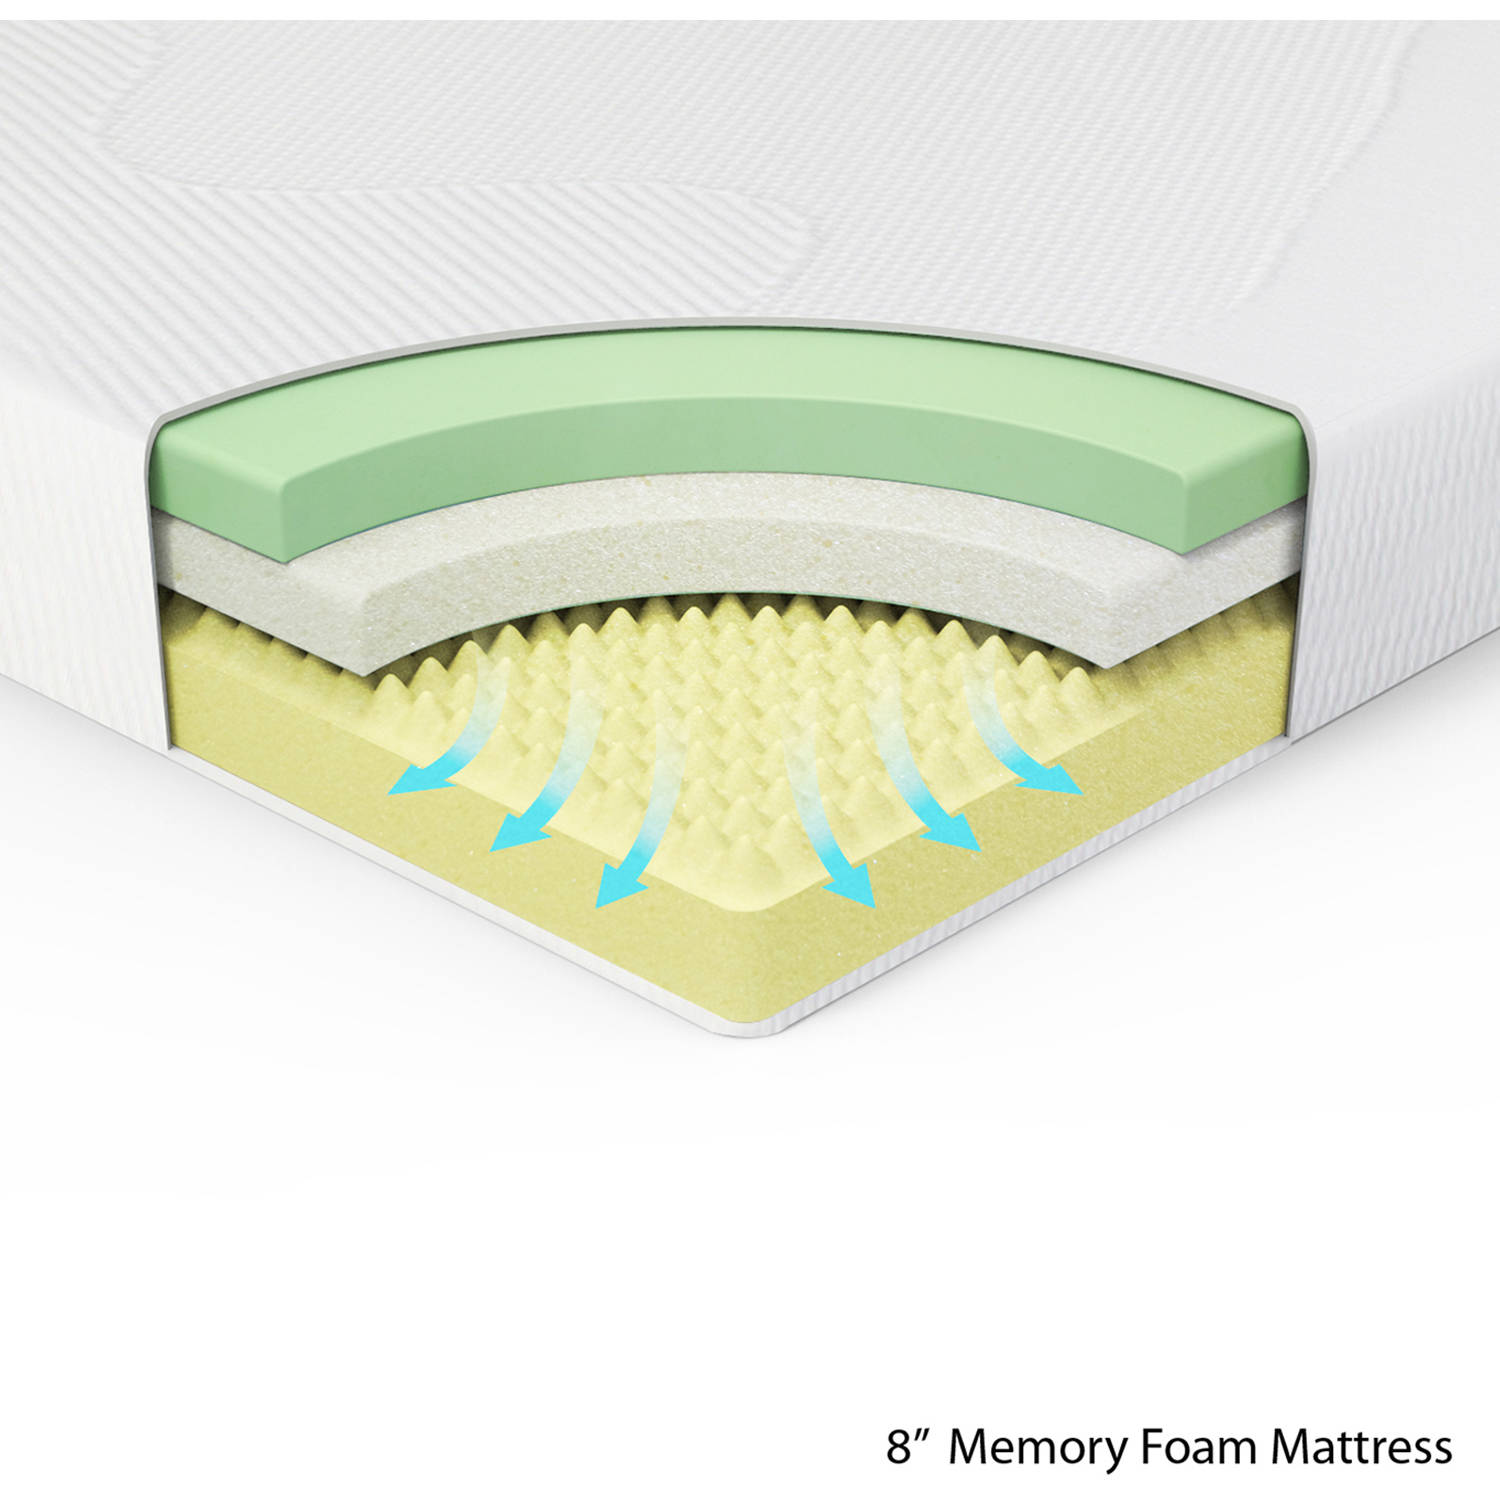 Spa sensations 8 memory foam mattress full size ebay Memory foam mattress set